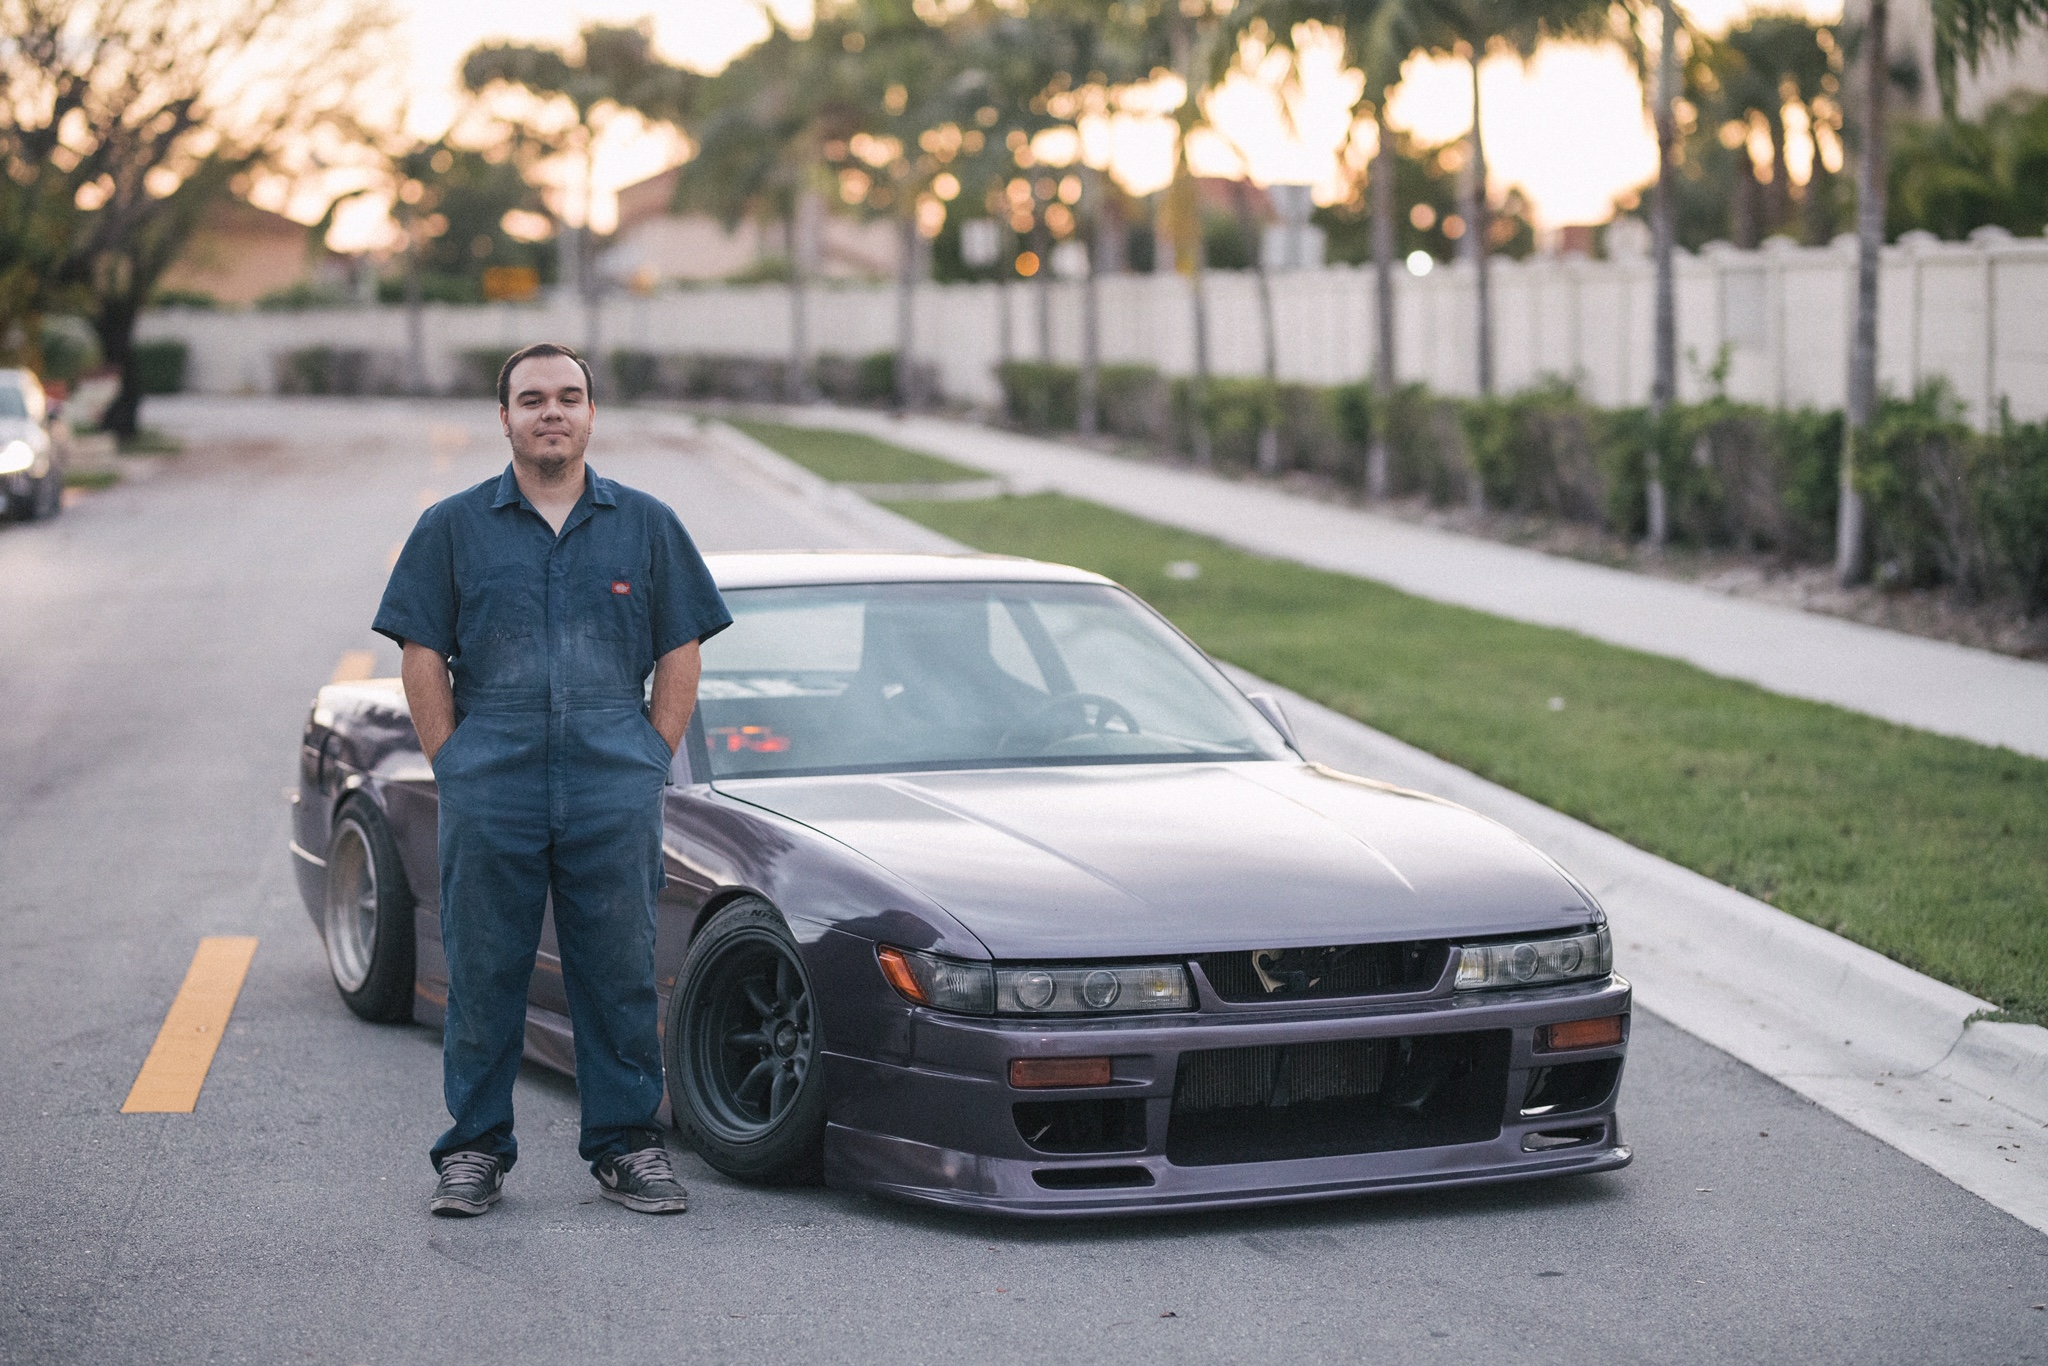 Mark Baptista - My name is Mark Baptista and I am hopelessly obsessed with the s chassis platform.I am a mechanical engineer by trade, having specialized in motorsports and internal combustion engines. I have my purple 1993 240sx coupe. I have disassembled and reassembled this car more times that I care to count, but I never grow tired of tinkering with it. It will be forever evolving.